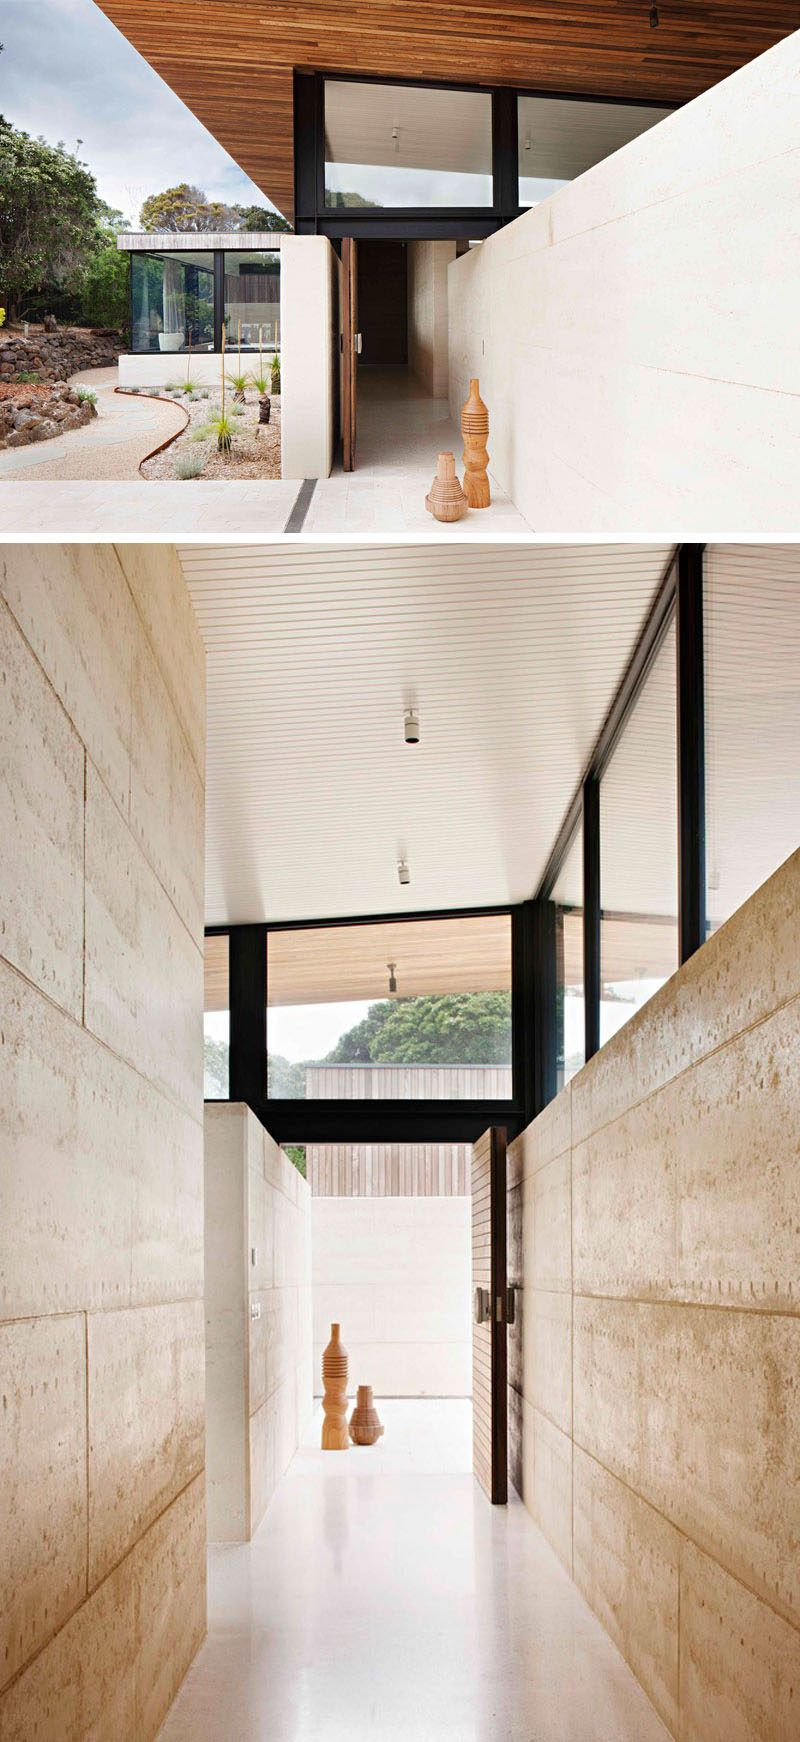 Local materials and techniques were used when building this modern house with the sand component of the rammed earth walls being locally sourced and built